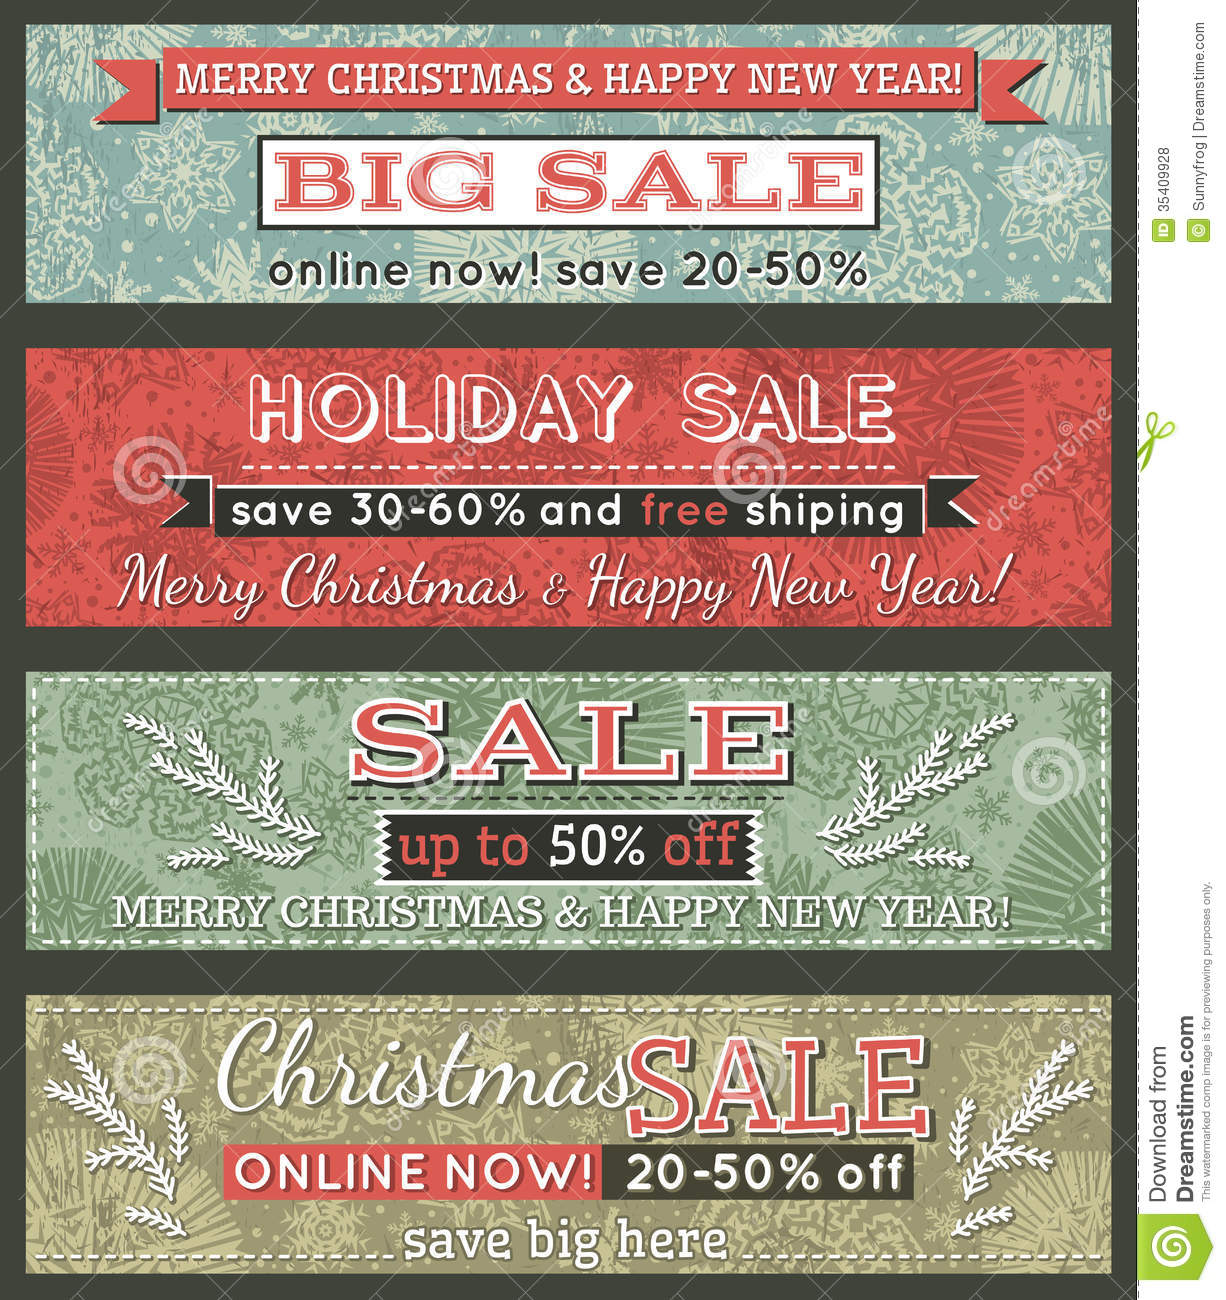 Vintage Christmas Banners With Sale Offer Vector Royalty Free Stock Photos Image 35409928